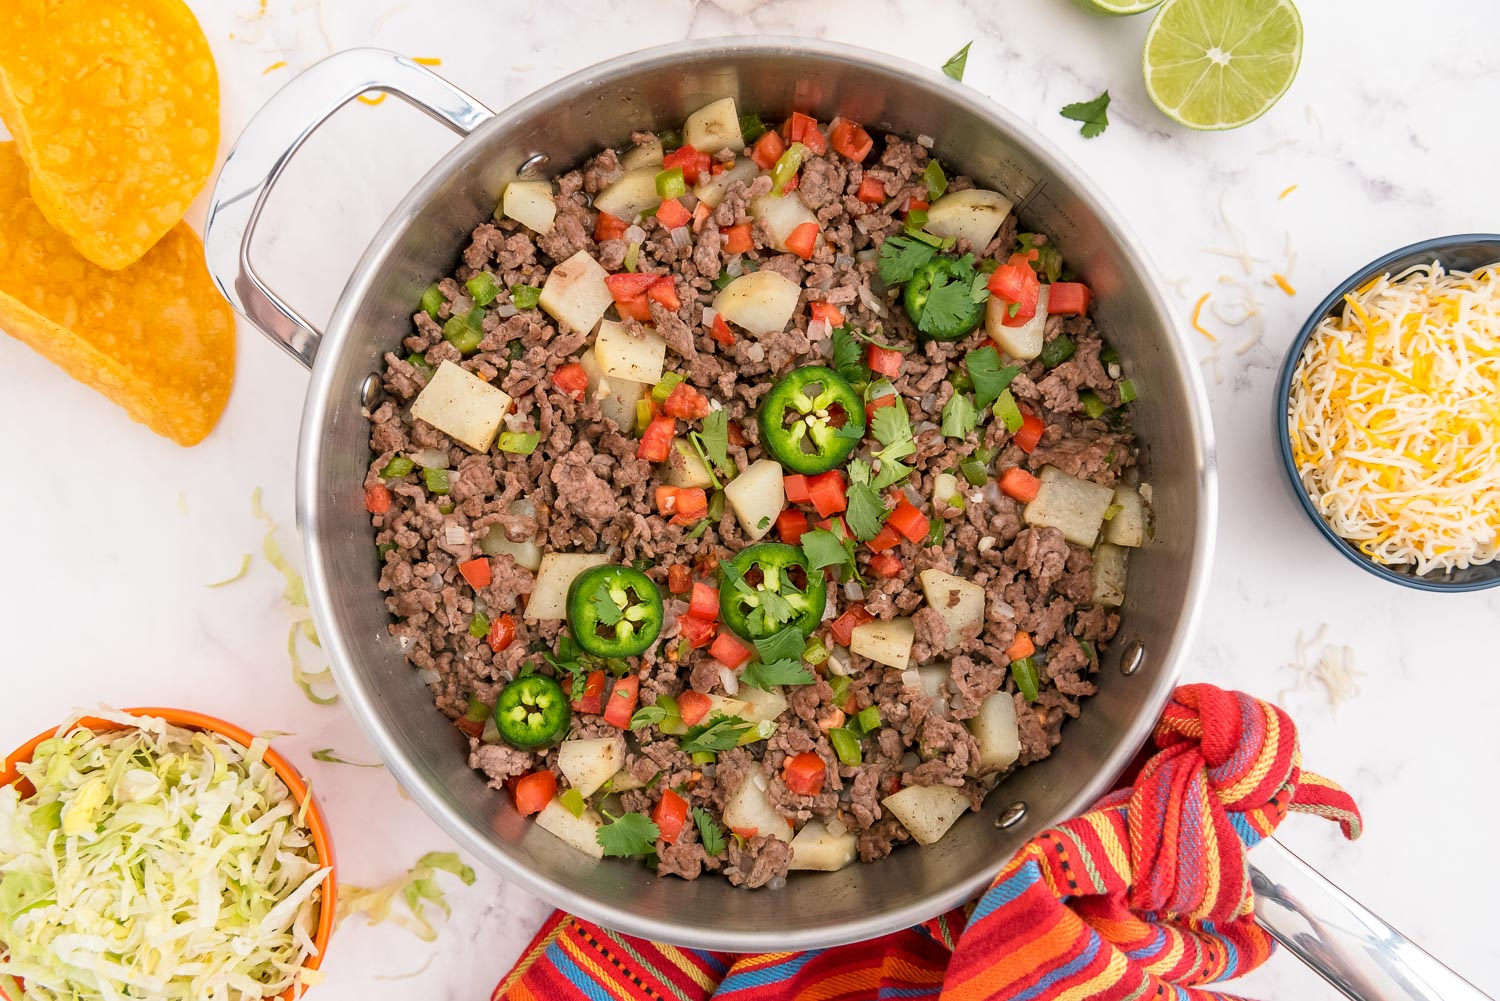 An overhead picture of the finished Picadillo meat mixture.